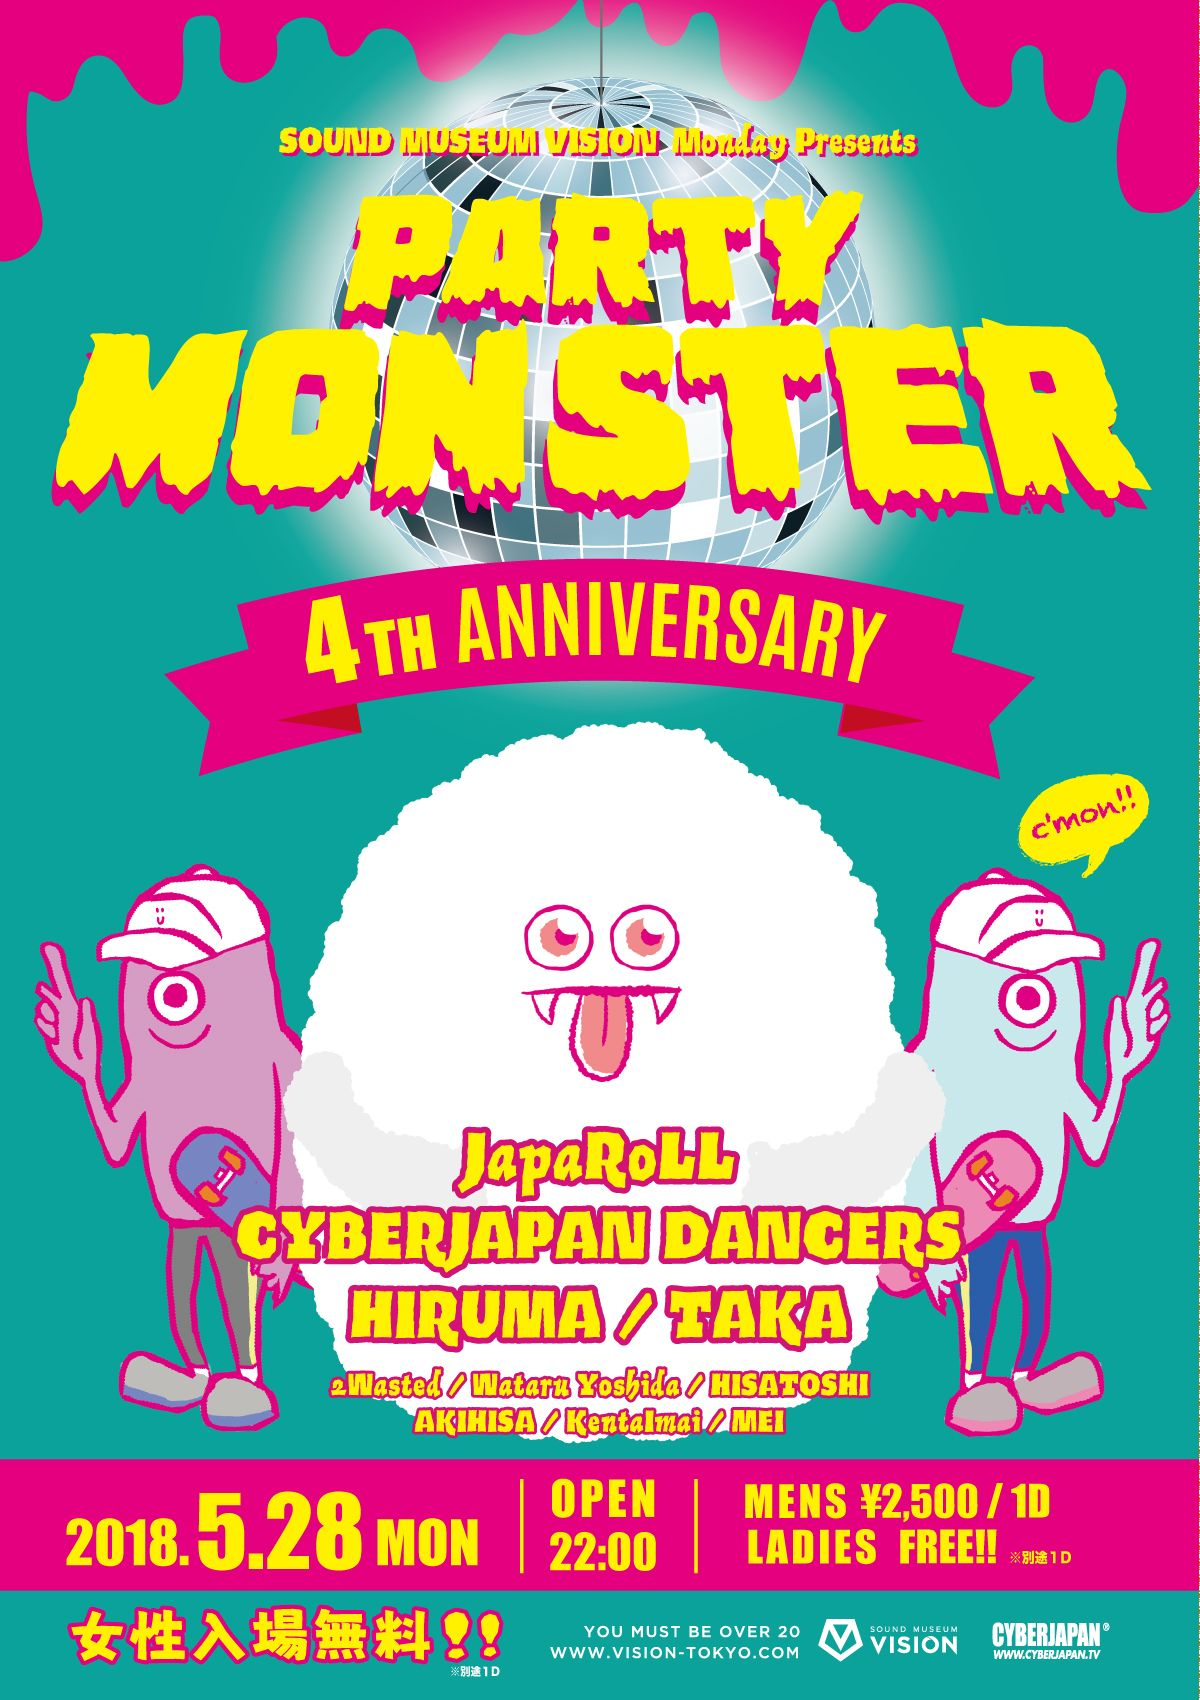 VISION MONDAY presents PARTY MONSTER 4th ANNIVERSARY